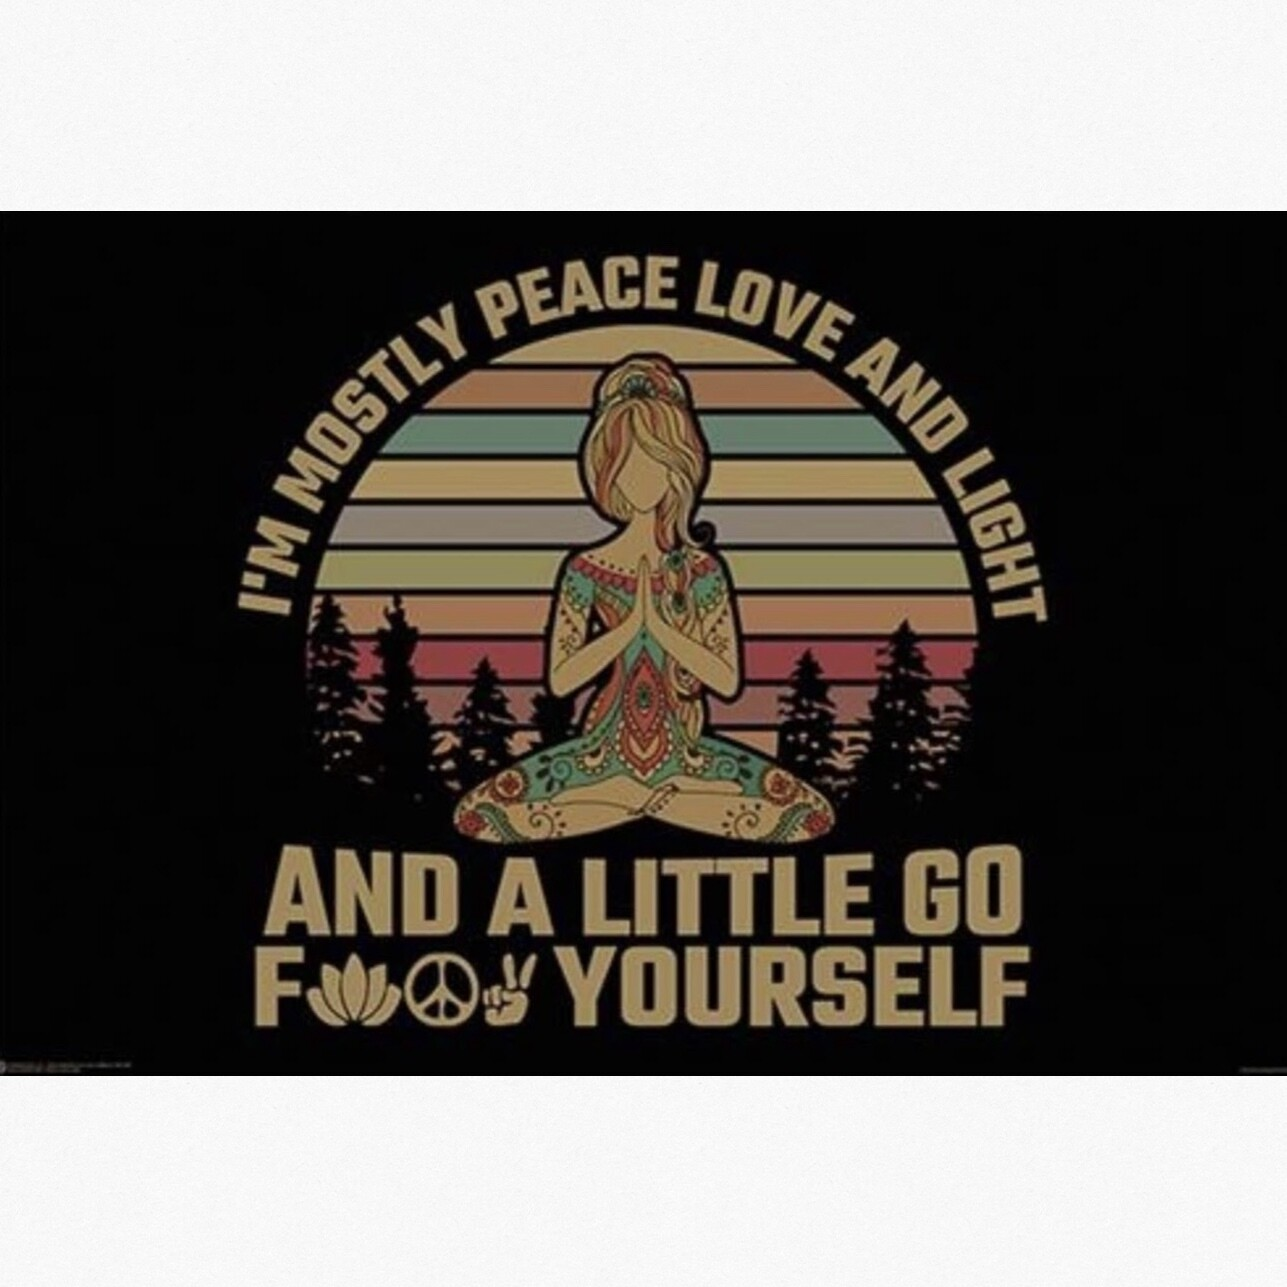 PEACE LOVE LIGHT POSTER